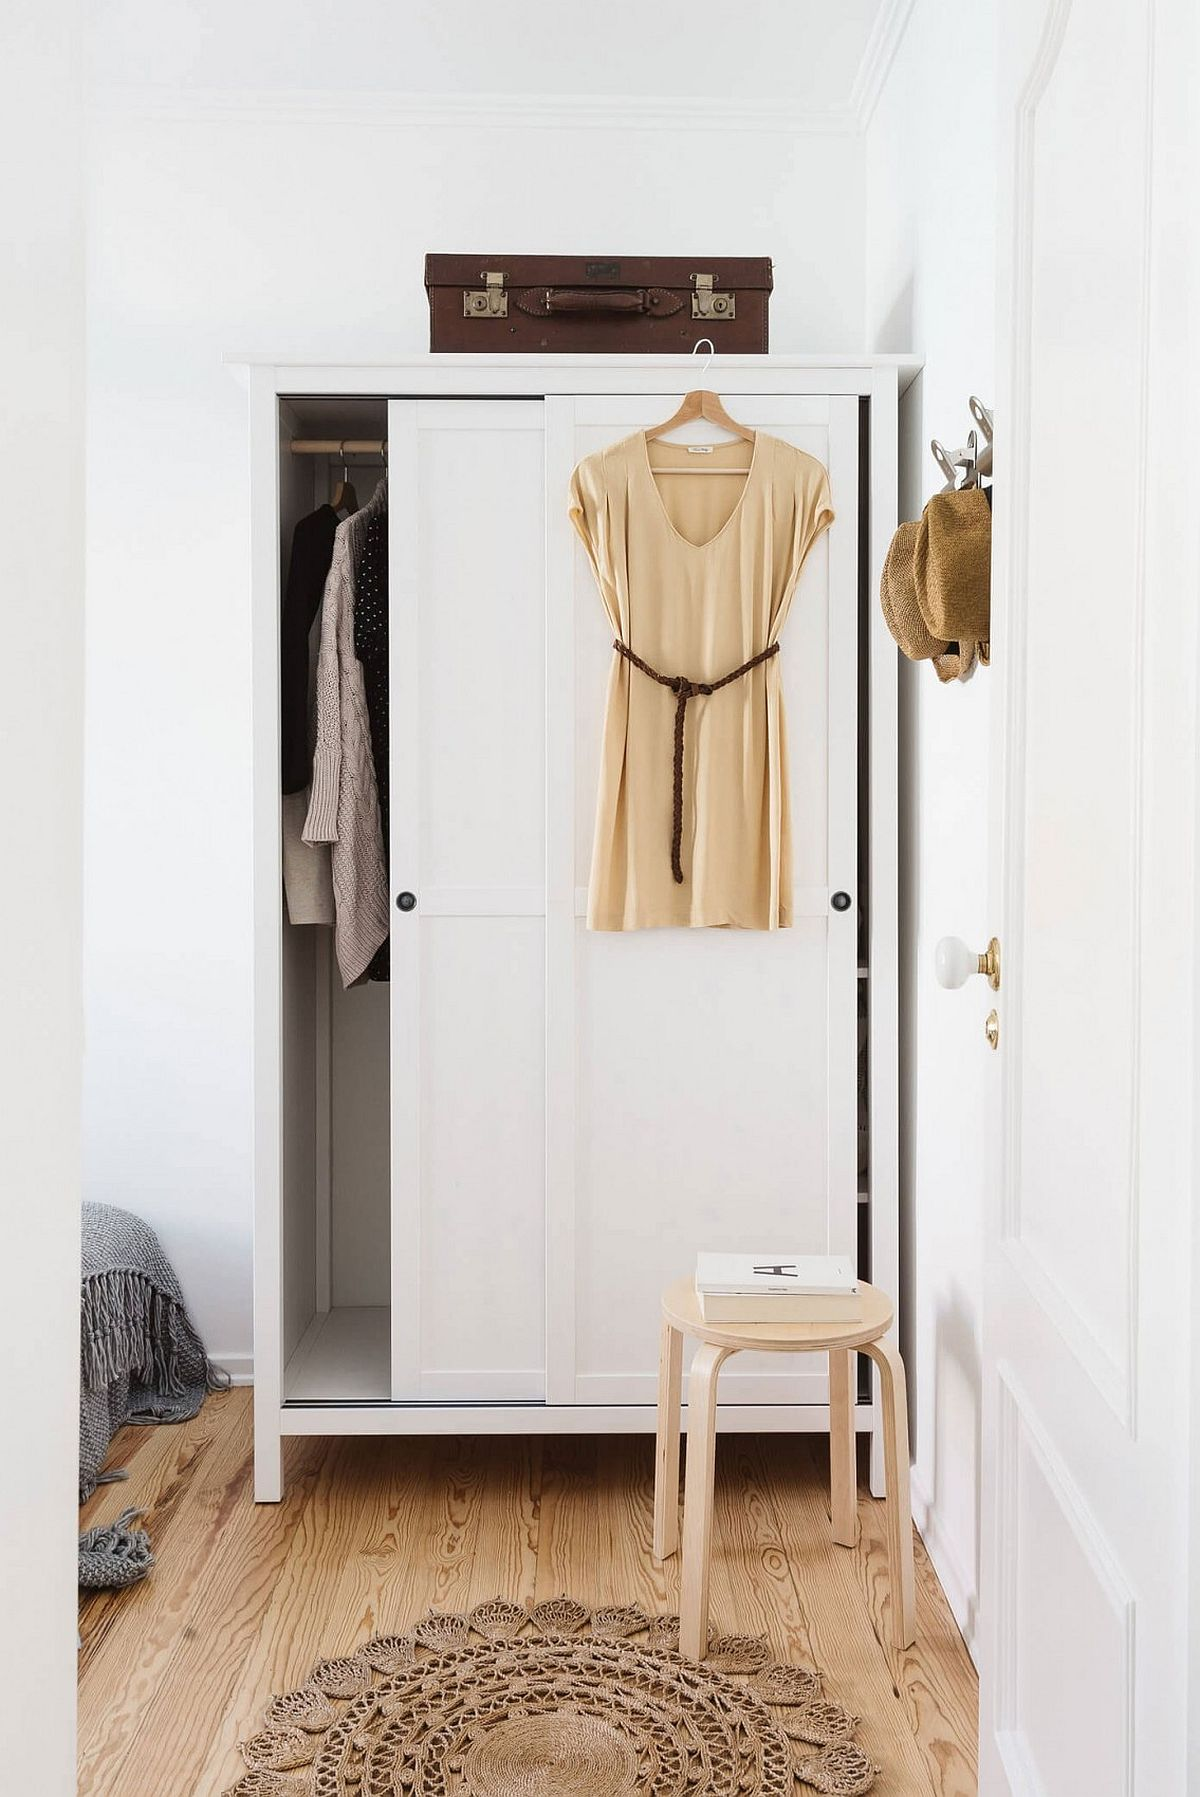 Modern wardrobe is elegant and space-savvy